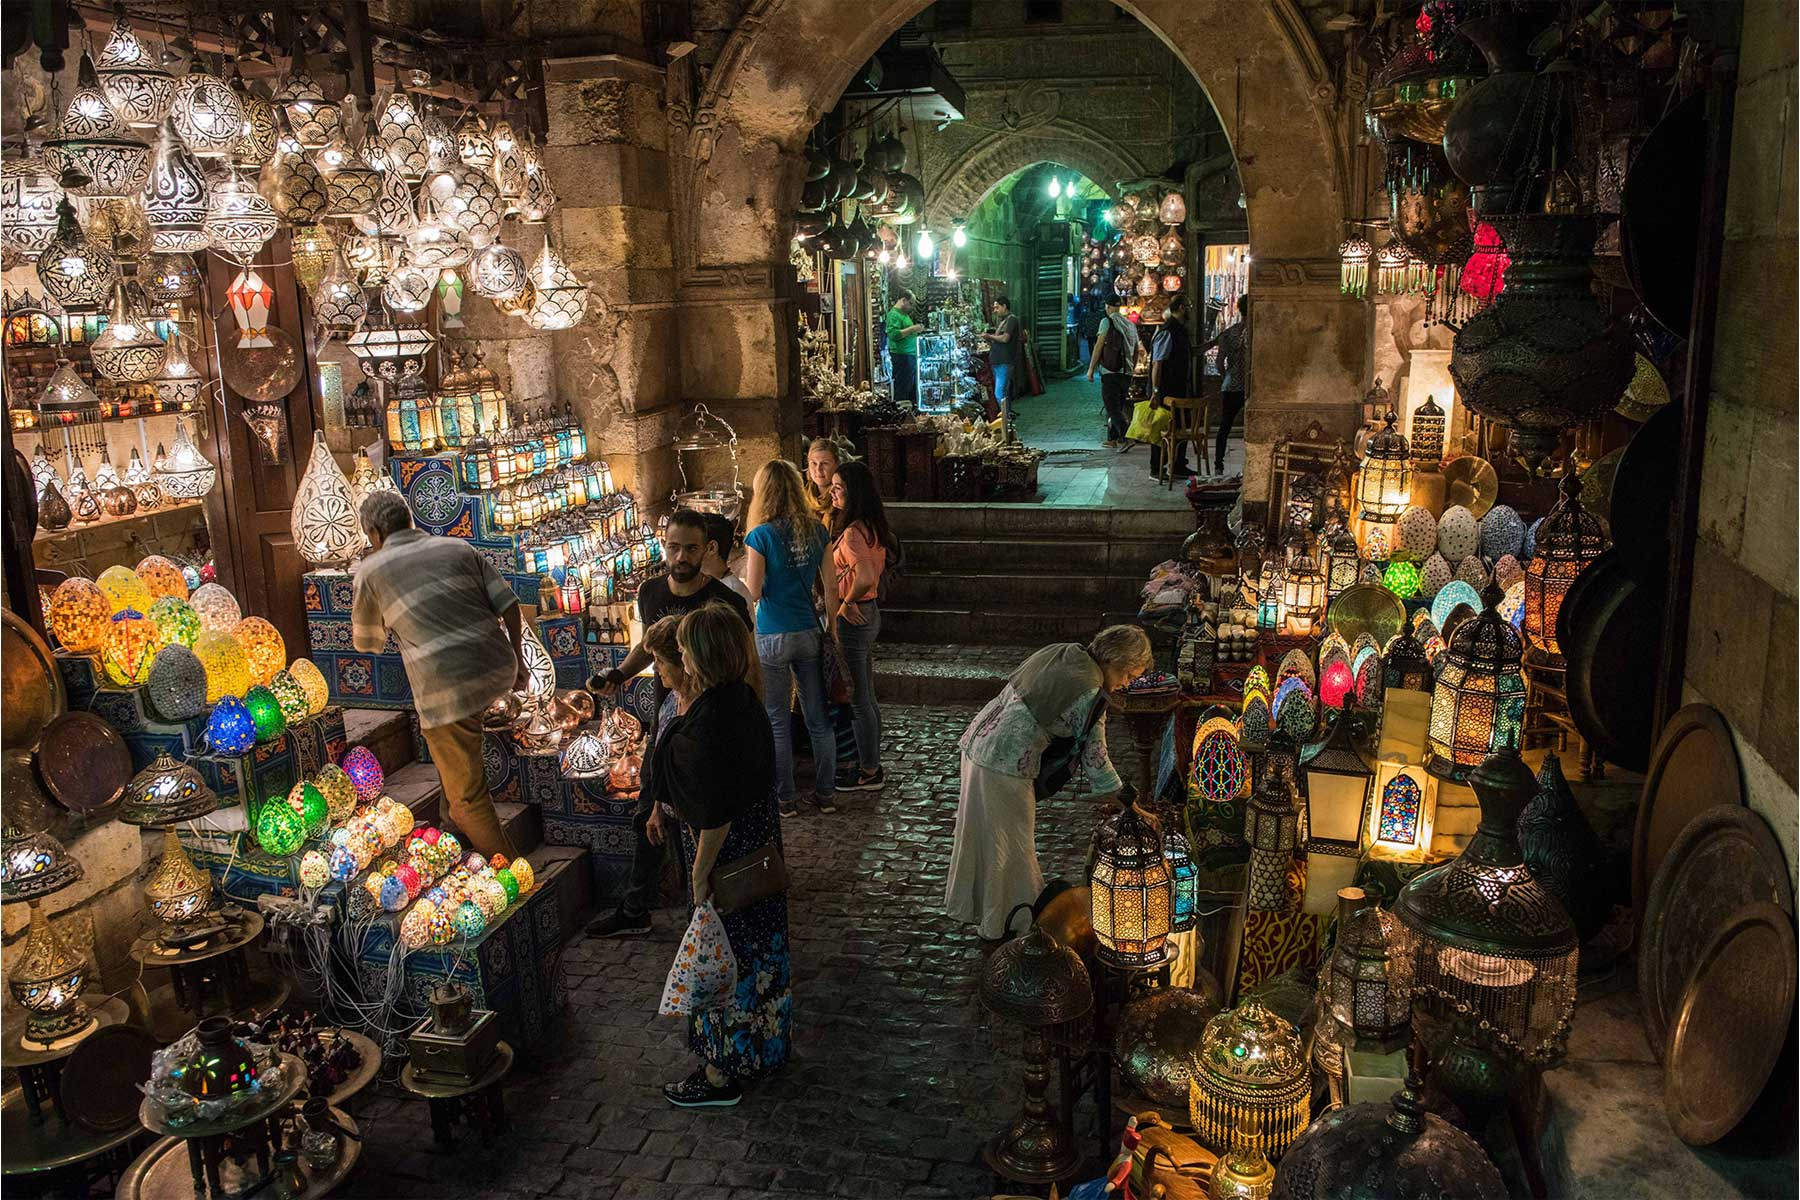 Khan El-Khalili at night